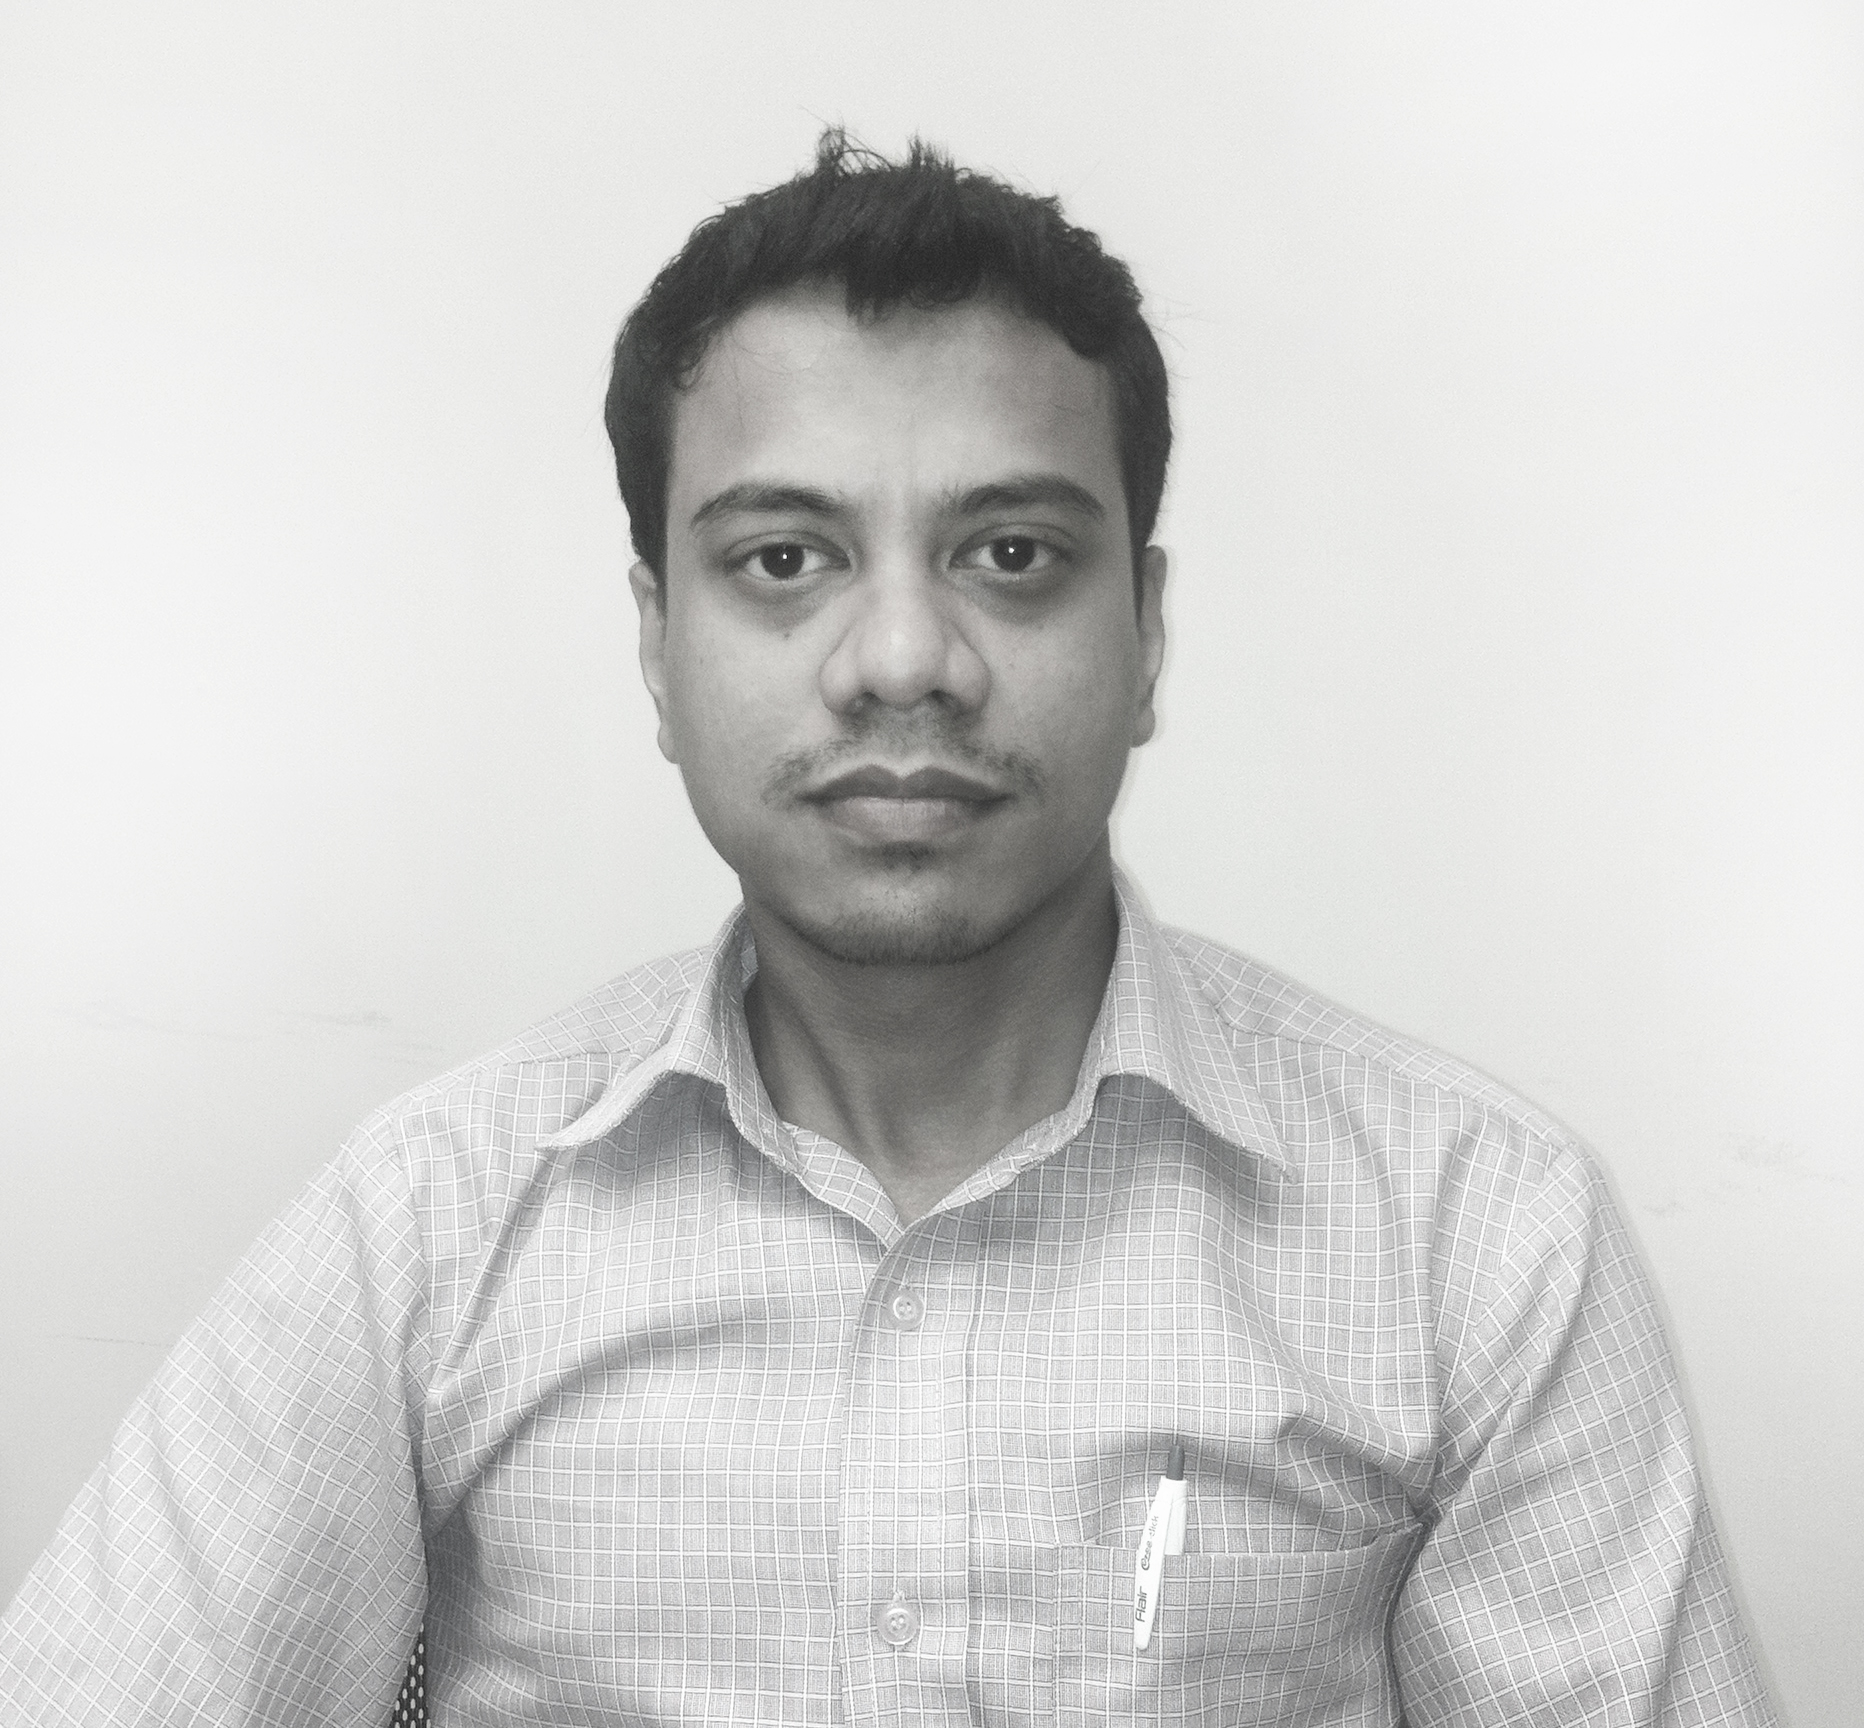 Sajal Das   Architect  Sajal Das became a part of N+U Design Studio in the year 2011. Since then he has worked on various projects like office interiors, residential houses, resort, sports facility, group housing and institutional complexes at various stages. A quiet and consistent worker with flaawless execution and an eye for perfection, Mr. Das has been an important & reliable member of N+U Team.  Some key projects Mr. Das has worked on include ATS Valley School in Dera Bassi, AWHO group housing in Gurgaon, Earth Gharonda group housing in Lucknow and AWHO group housing in Pune. Before joining N+U Design Studio, Mr. Das worked with design intensive multi disciplinary practices in New Delhi, where he was involved in hospitality, commercial and residential projects.